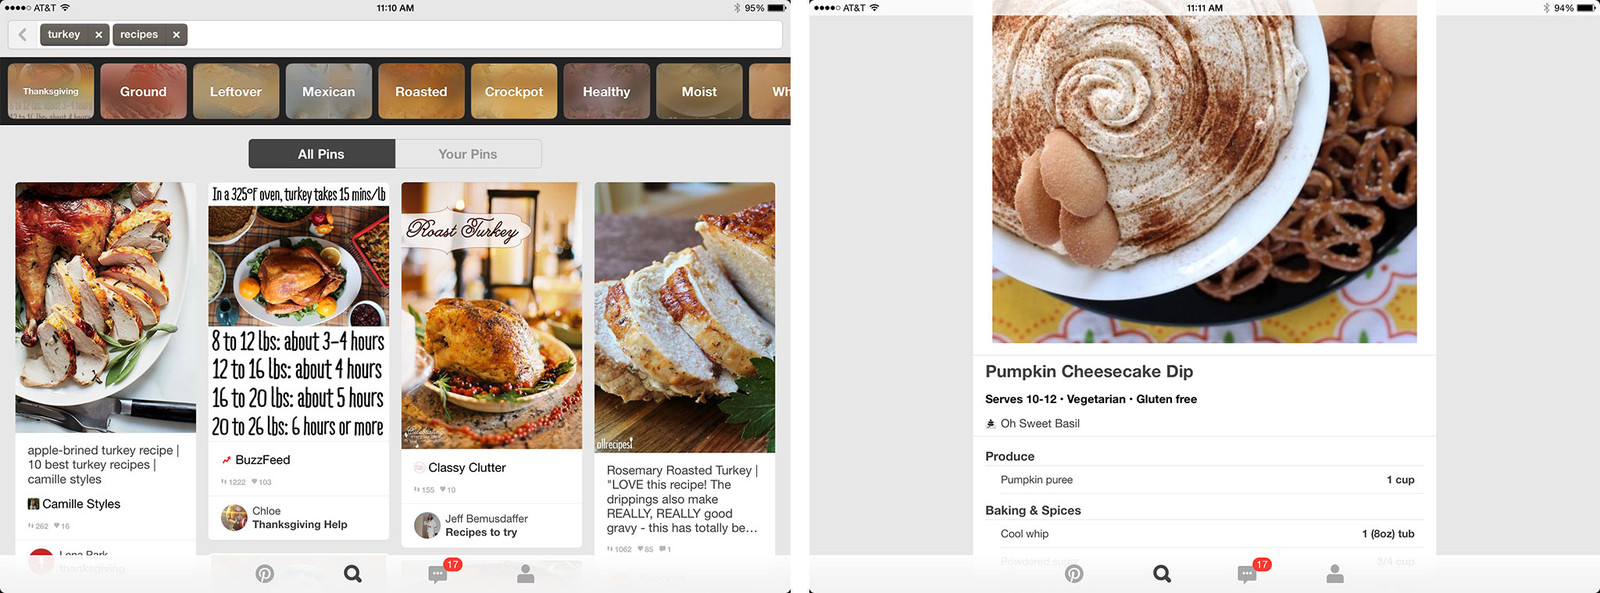 Best Thanksgiving recipe and cooking apps for iPad: Pinterest